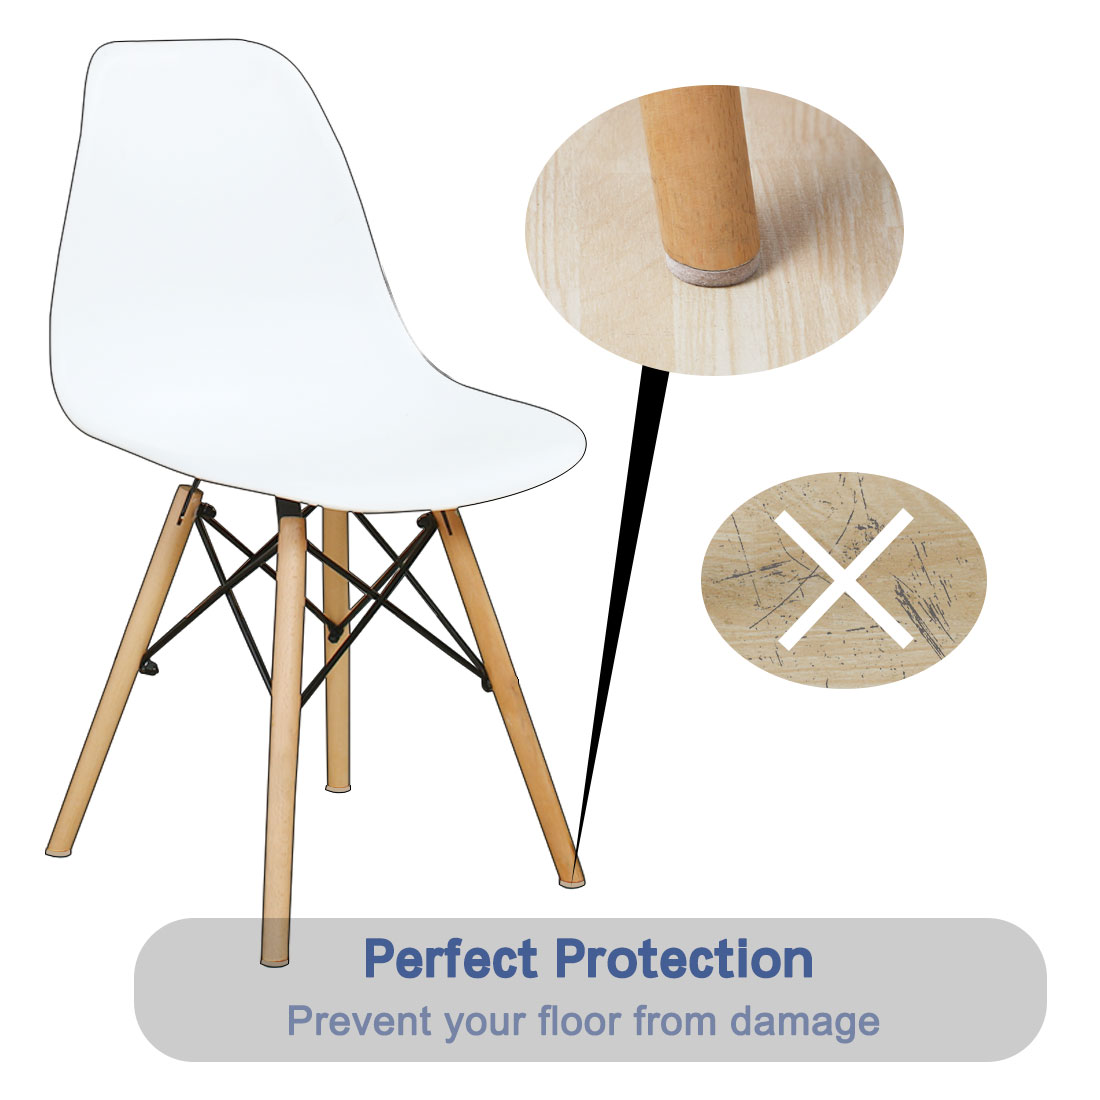 """Furniture Pads Round 1 1/4"""" Self-stick for Furniture Floor Chair Protector 30pcs - image 2 of 7"""